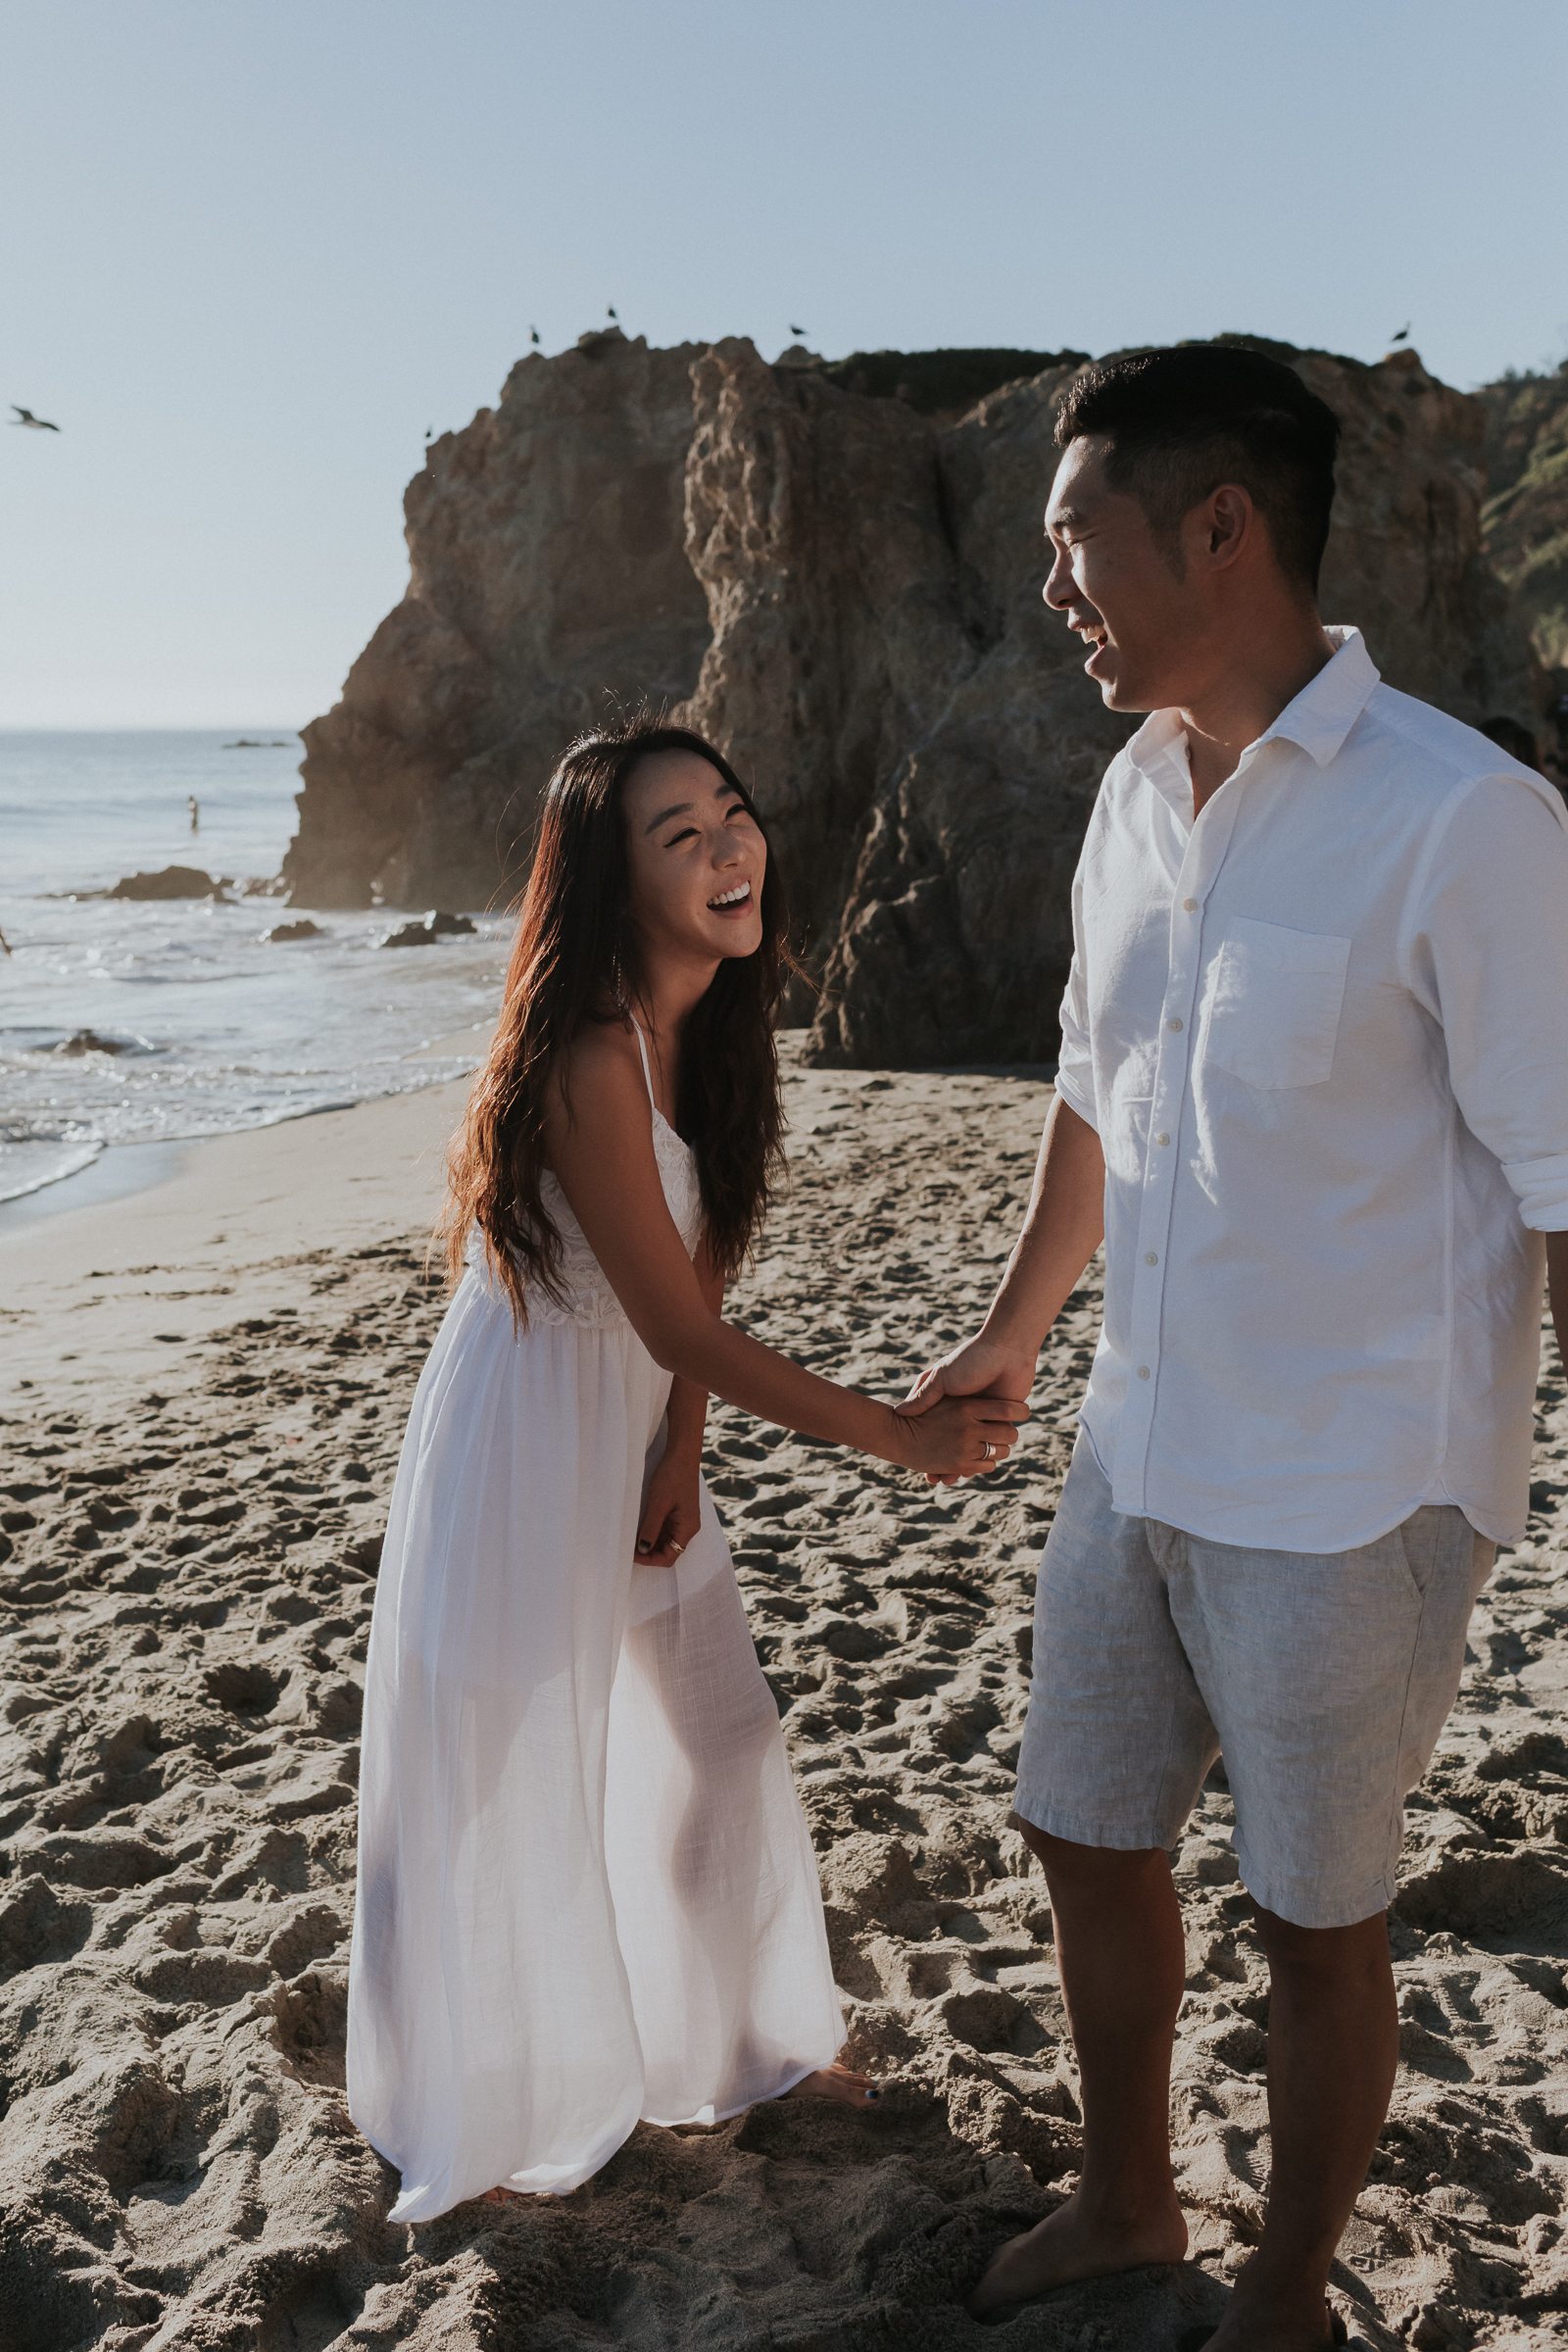 Malibu-El-Matador-State-Beach-Sunset-Engagement-Photos-Los-Angeles-Documentary-Wedding-Photographer-1.jpg